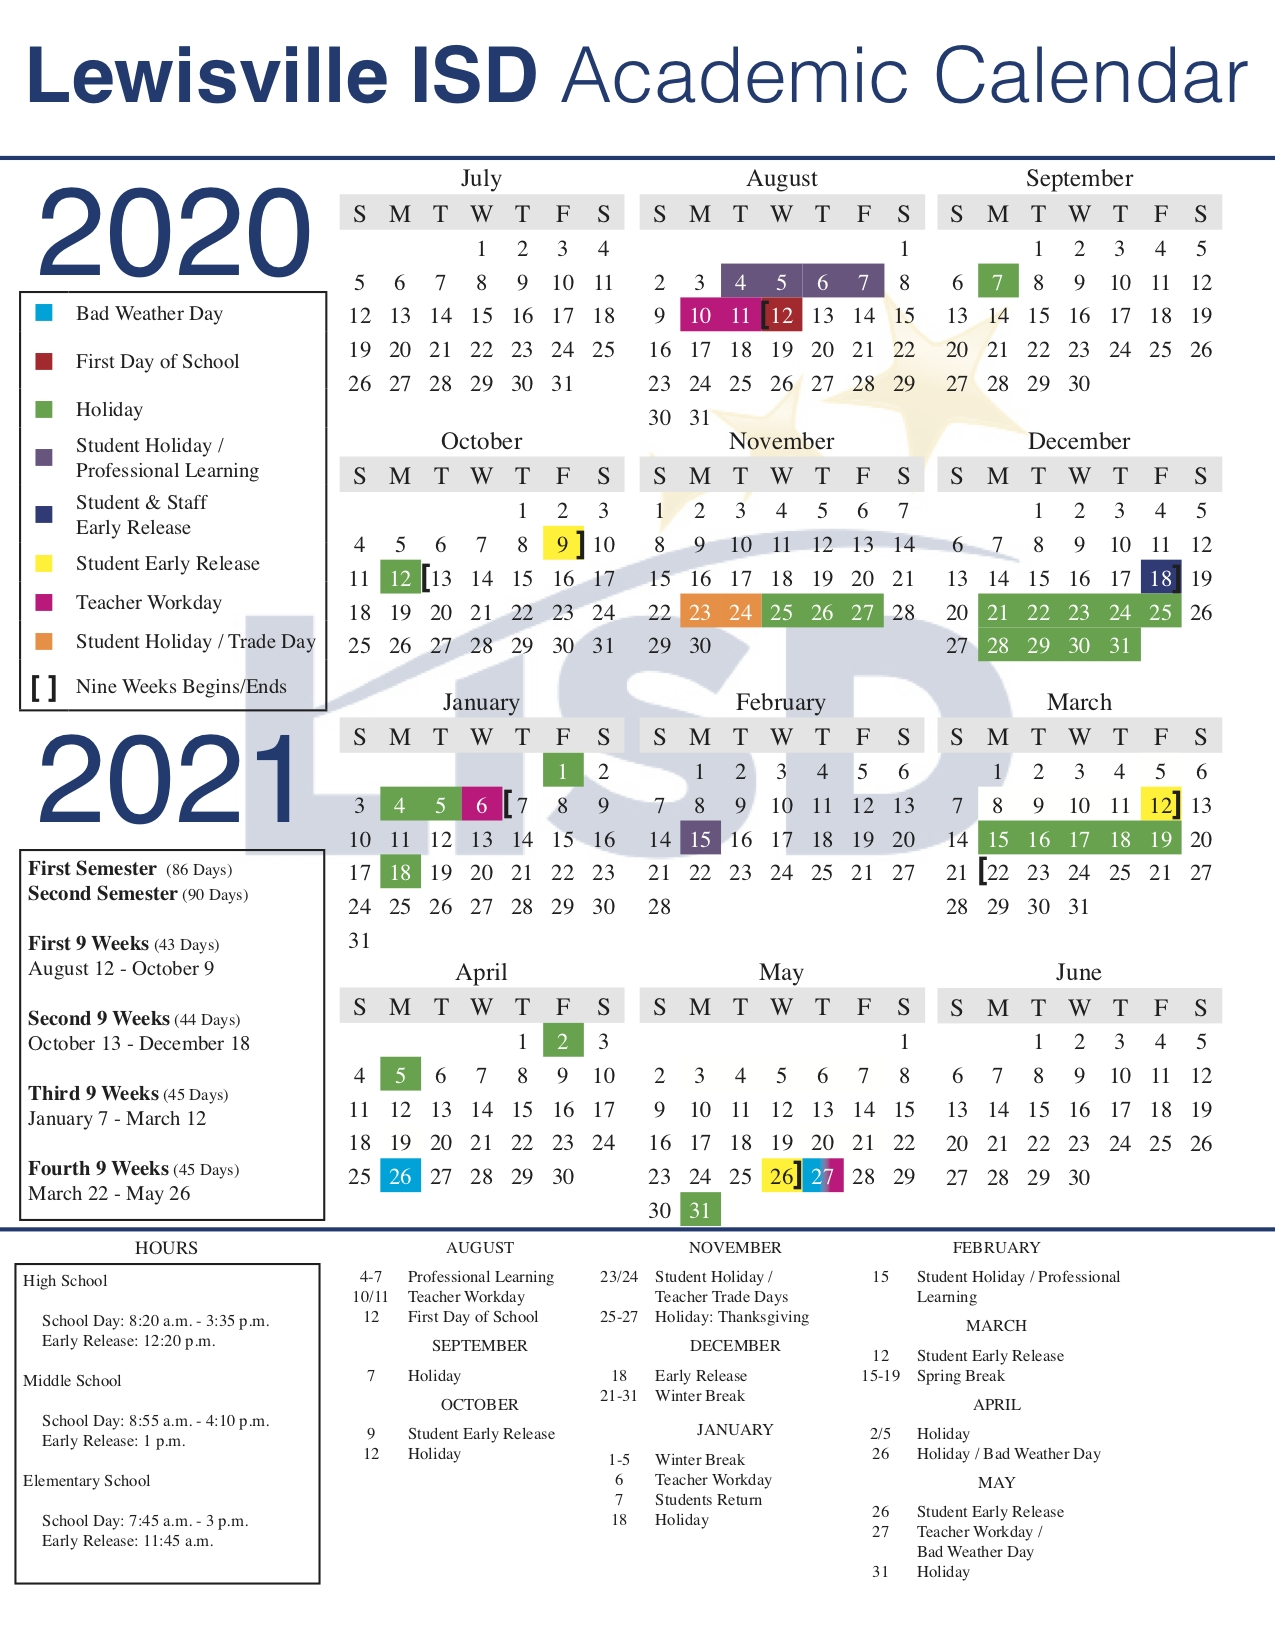 Lisd Approves 2020-21 Academic Calendar